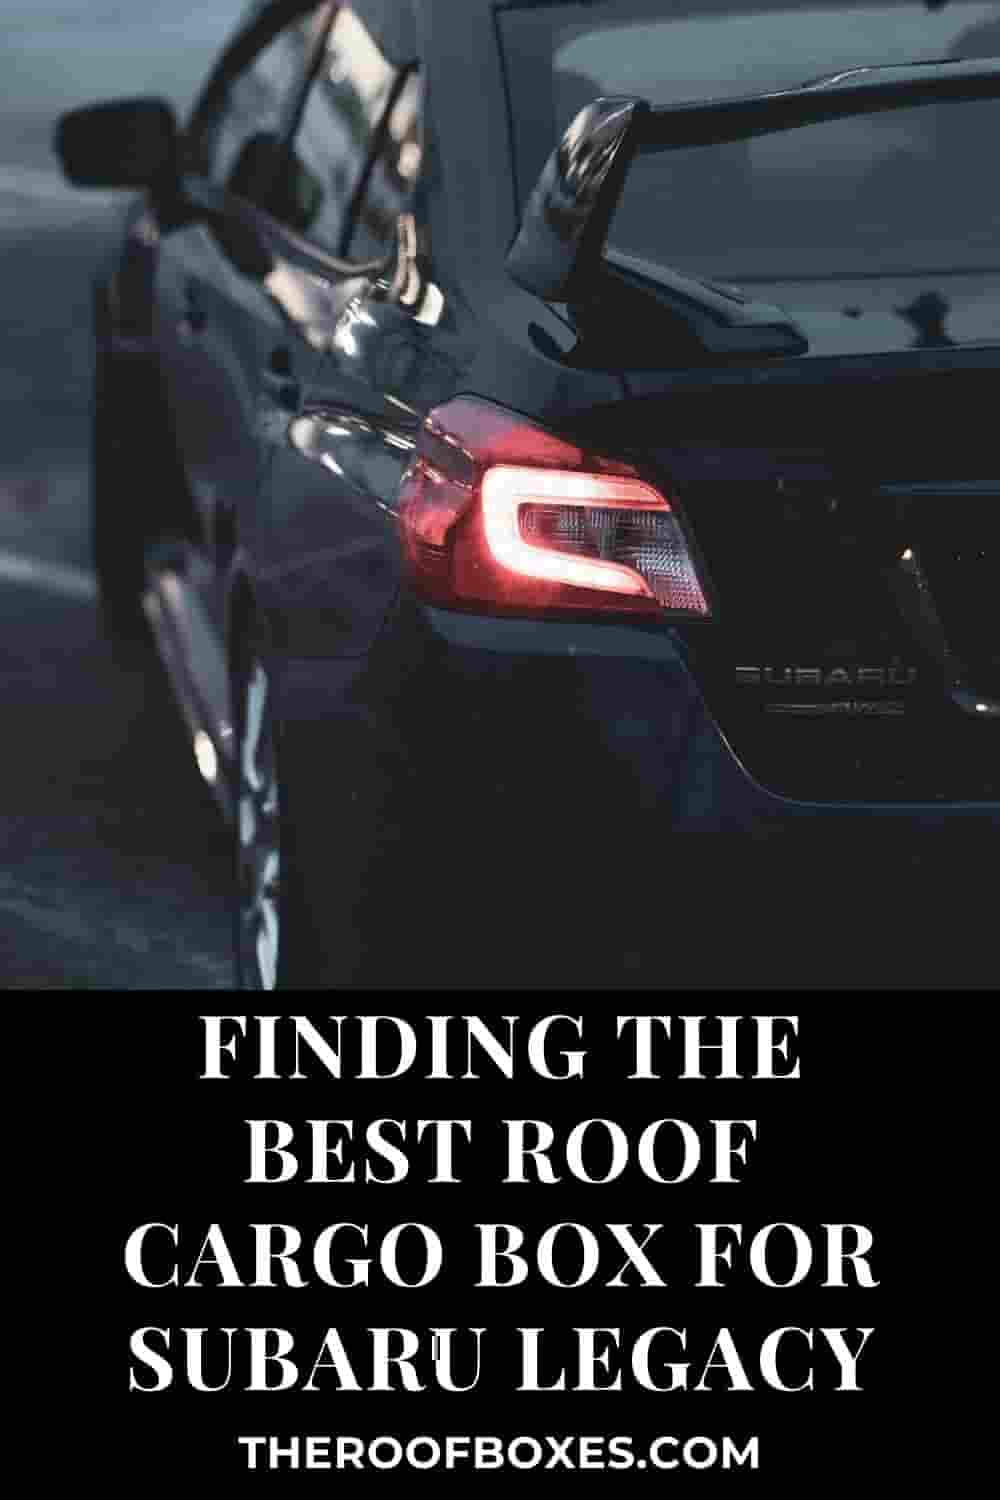 best roof cargo box for subaru legacy– Reviews and Comparison